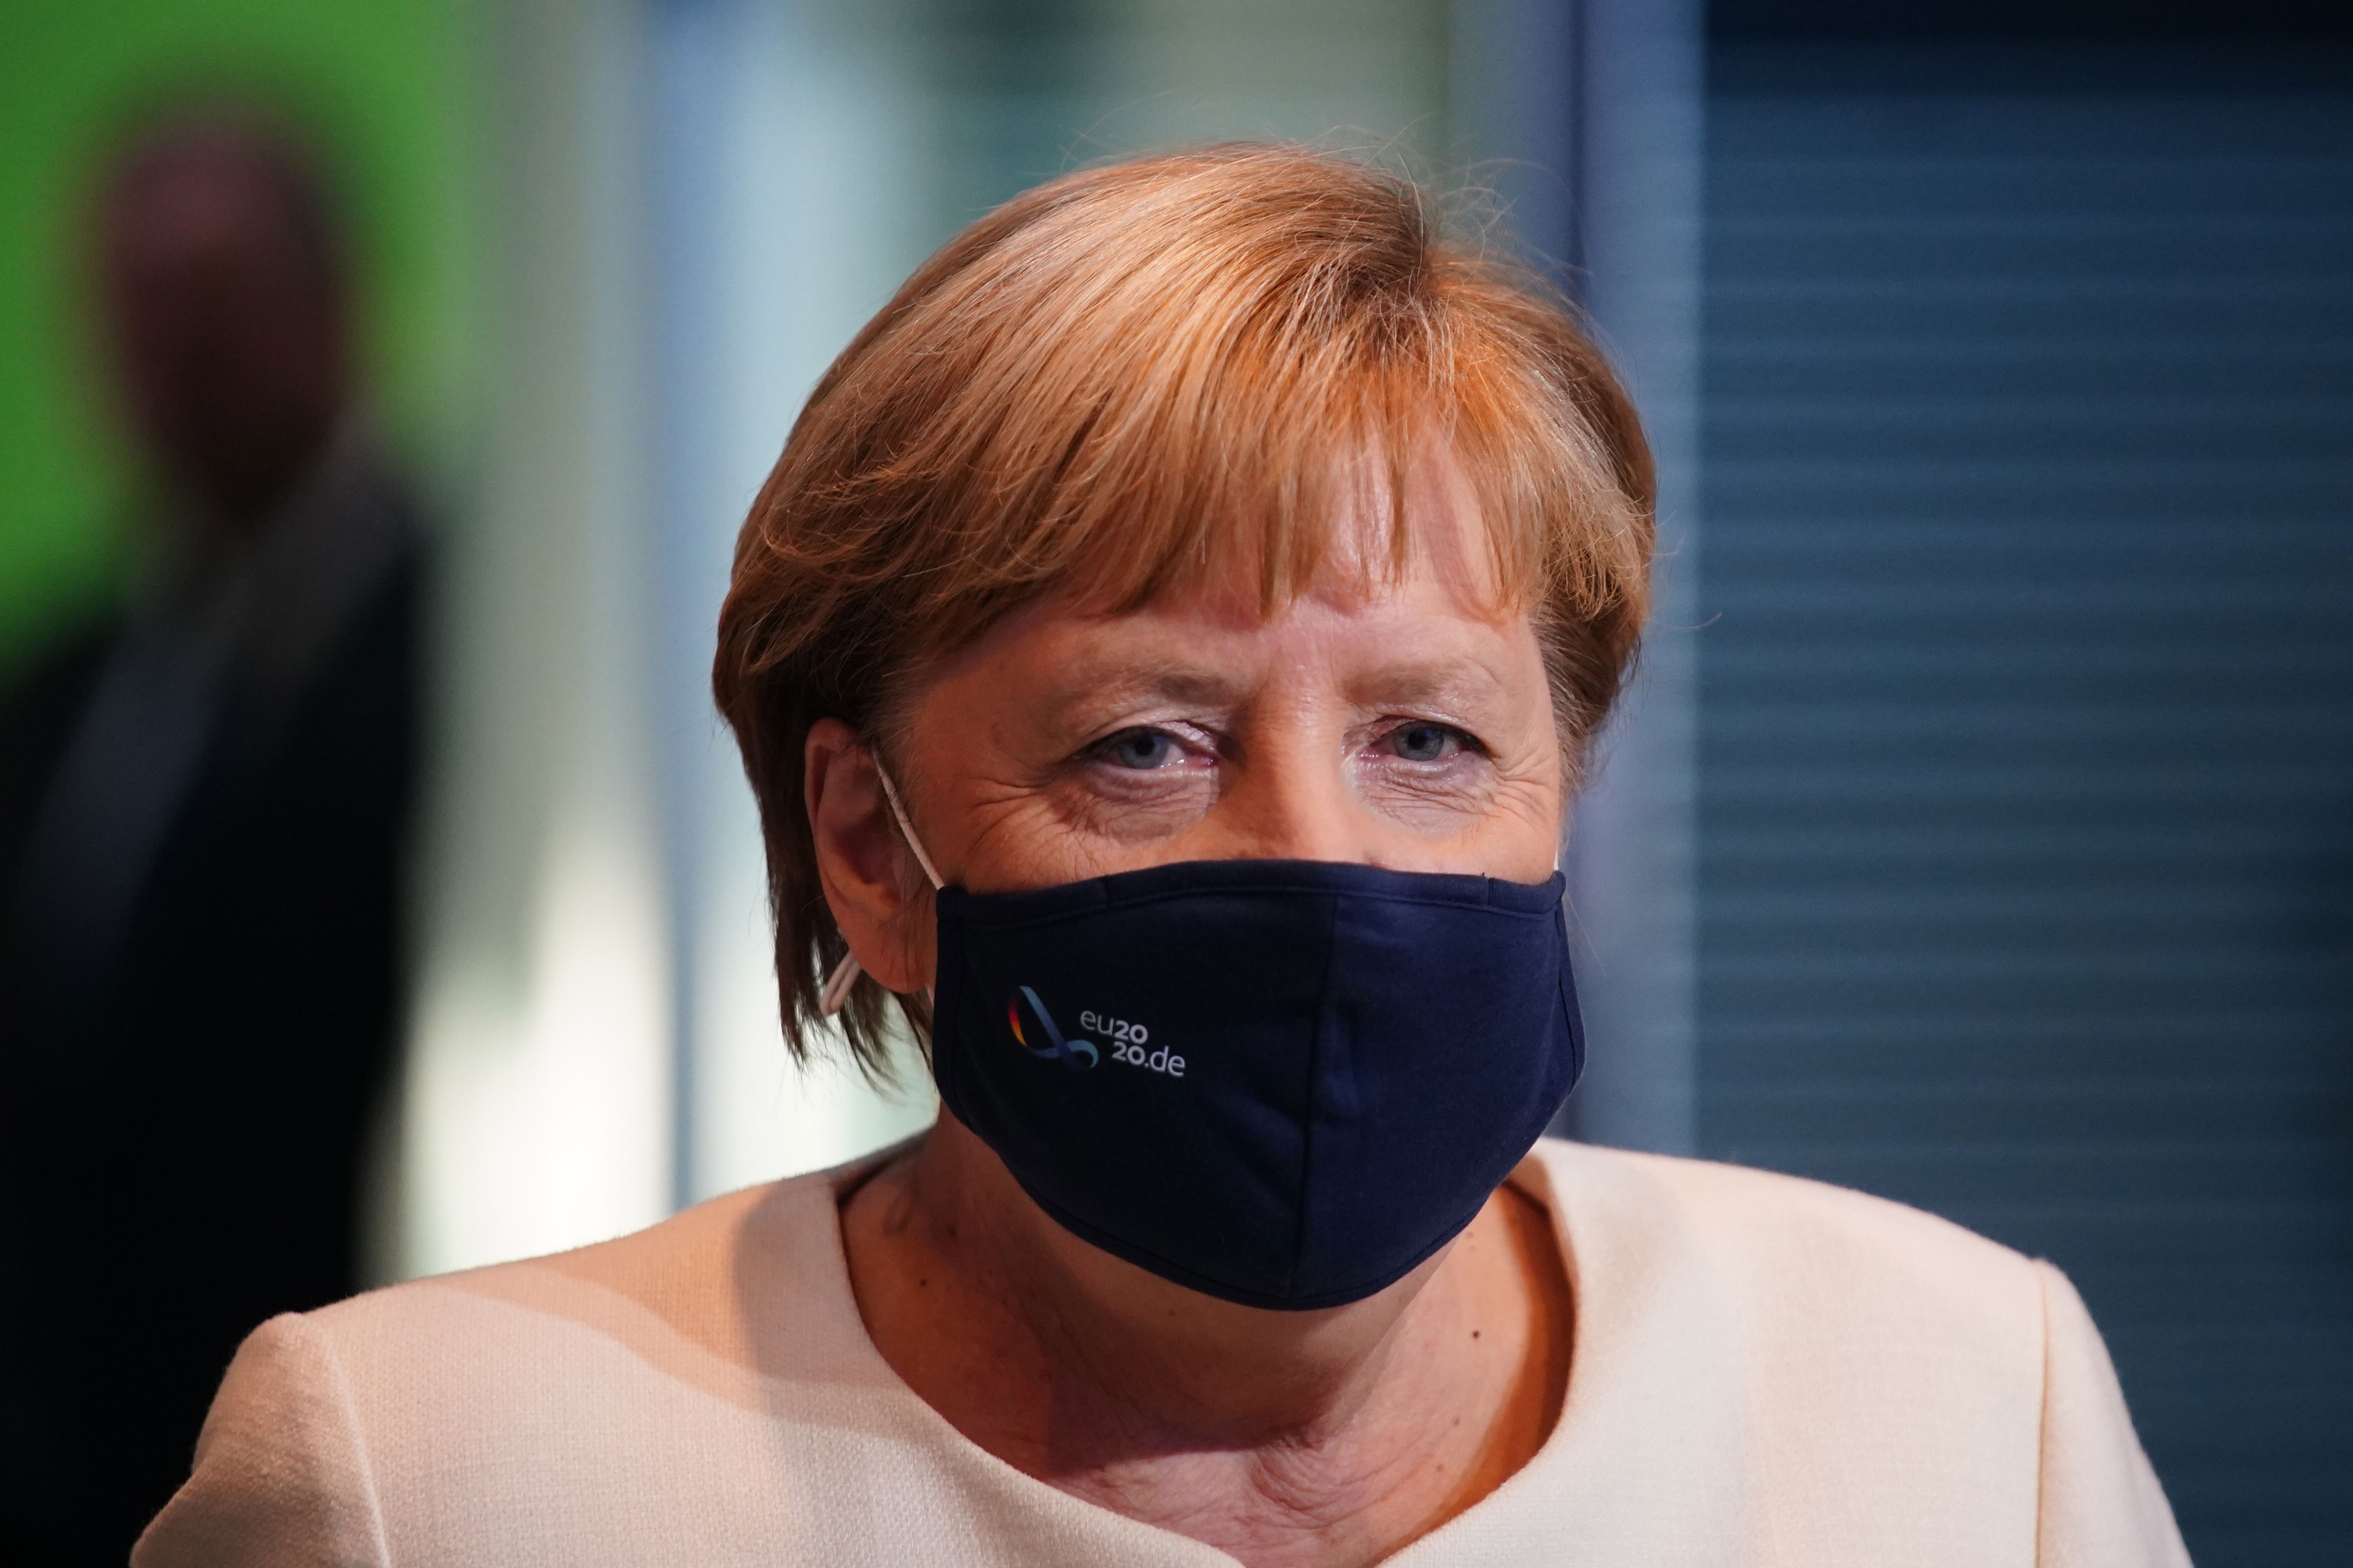 German Chancellor Angela Merkel arrives for a press conference on September 29 in Berlin.